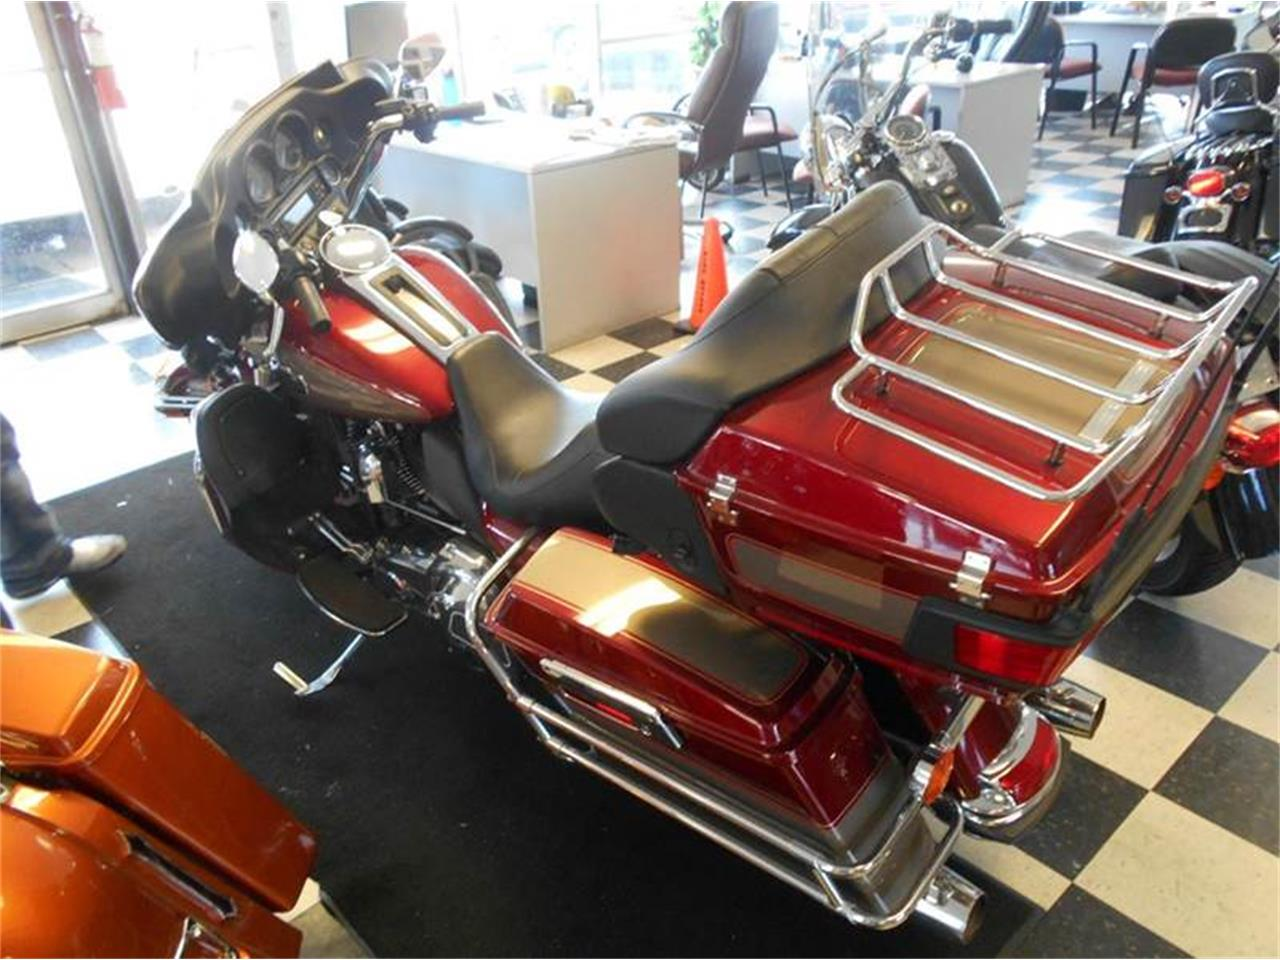 Large Picture of '09 Harley-Davidson Electra Glide located in Olathe Kansas - $10,995.00 - LH24